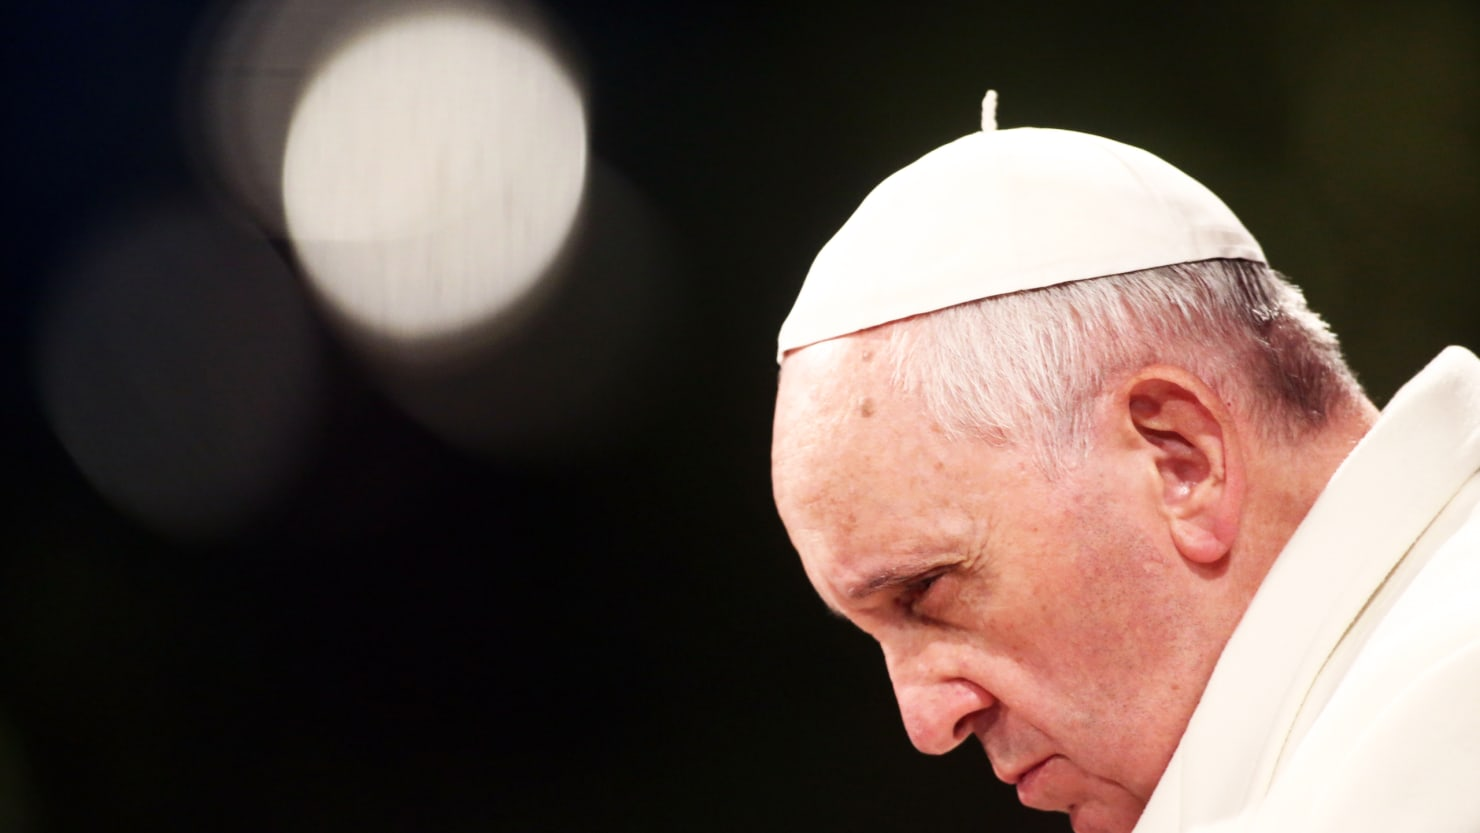 Pope Francis Just Pulled a Power Play on American Bishops at Crucial Conference